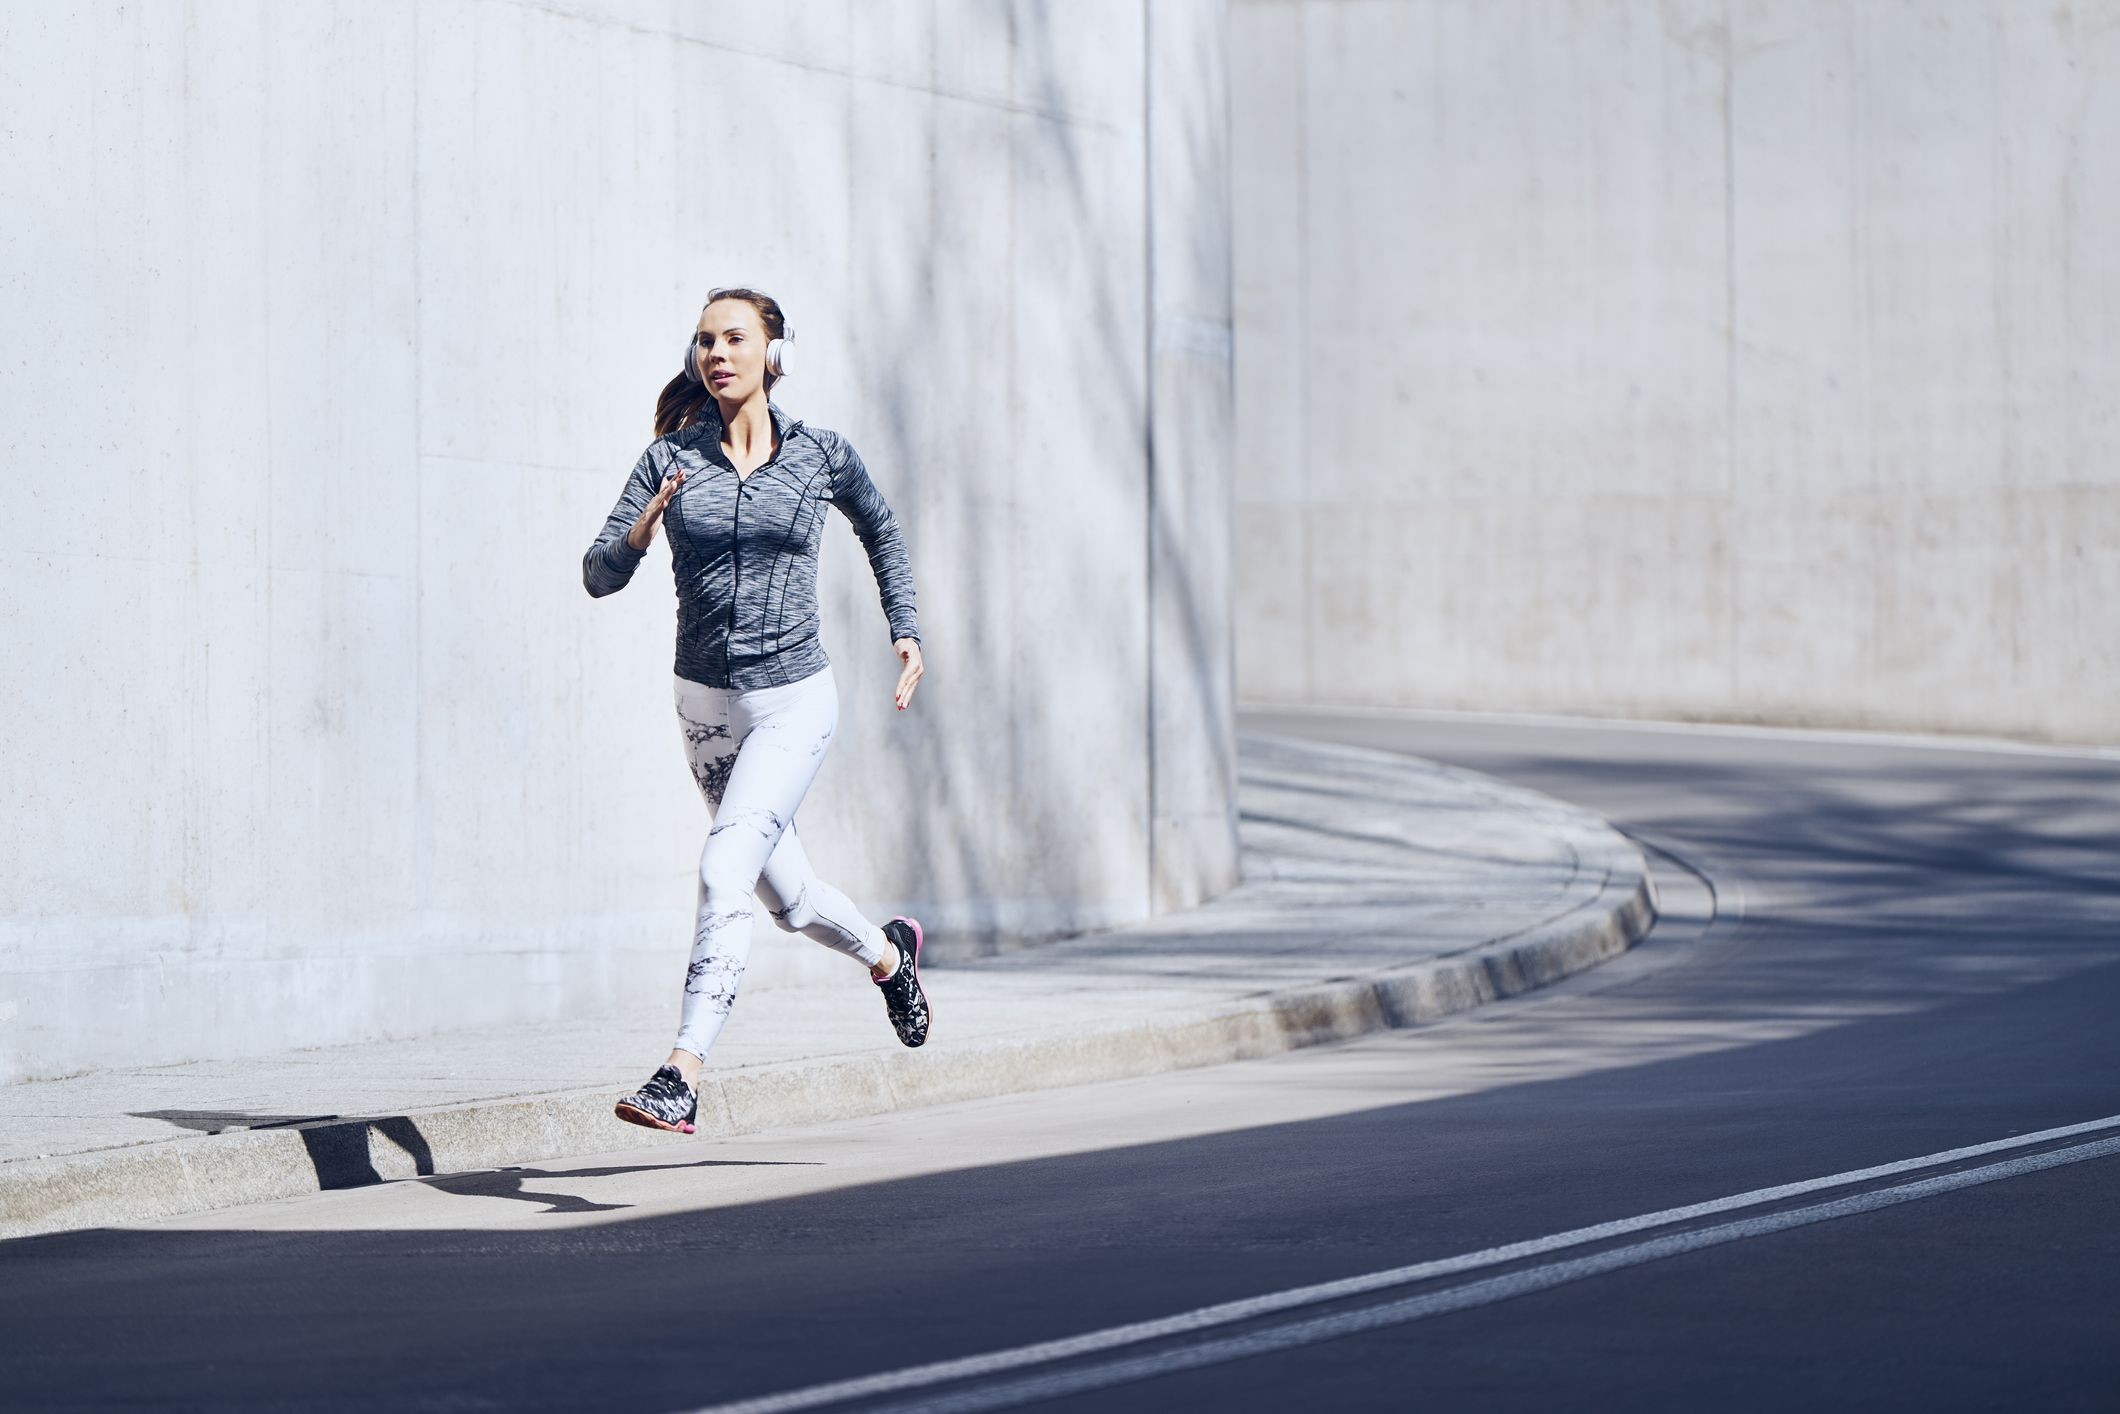 3 Workouts that Burn More Calories than a 30 Minute Run